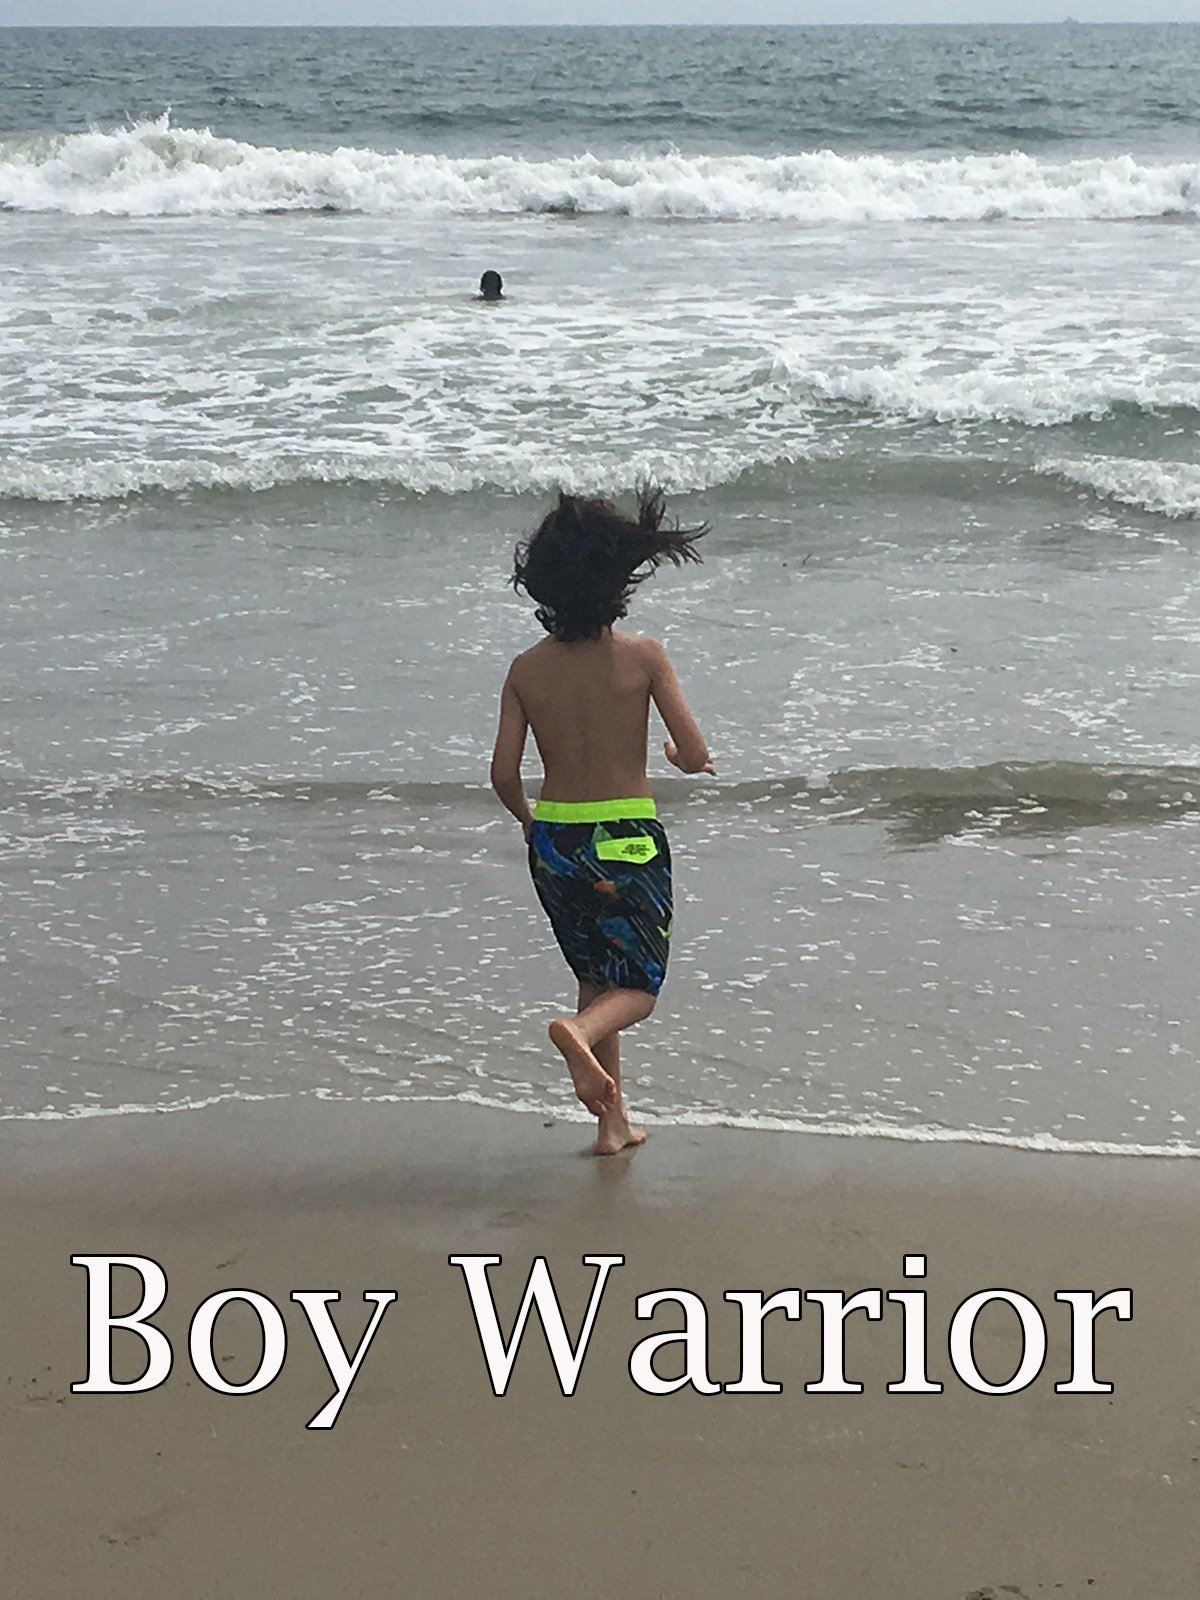 Boy Warrior